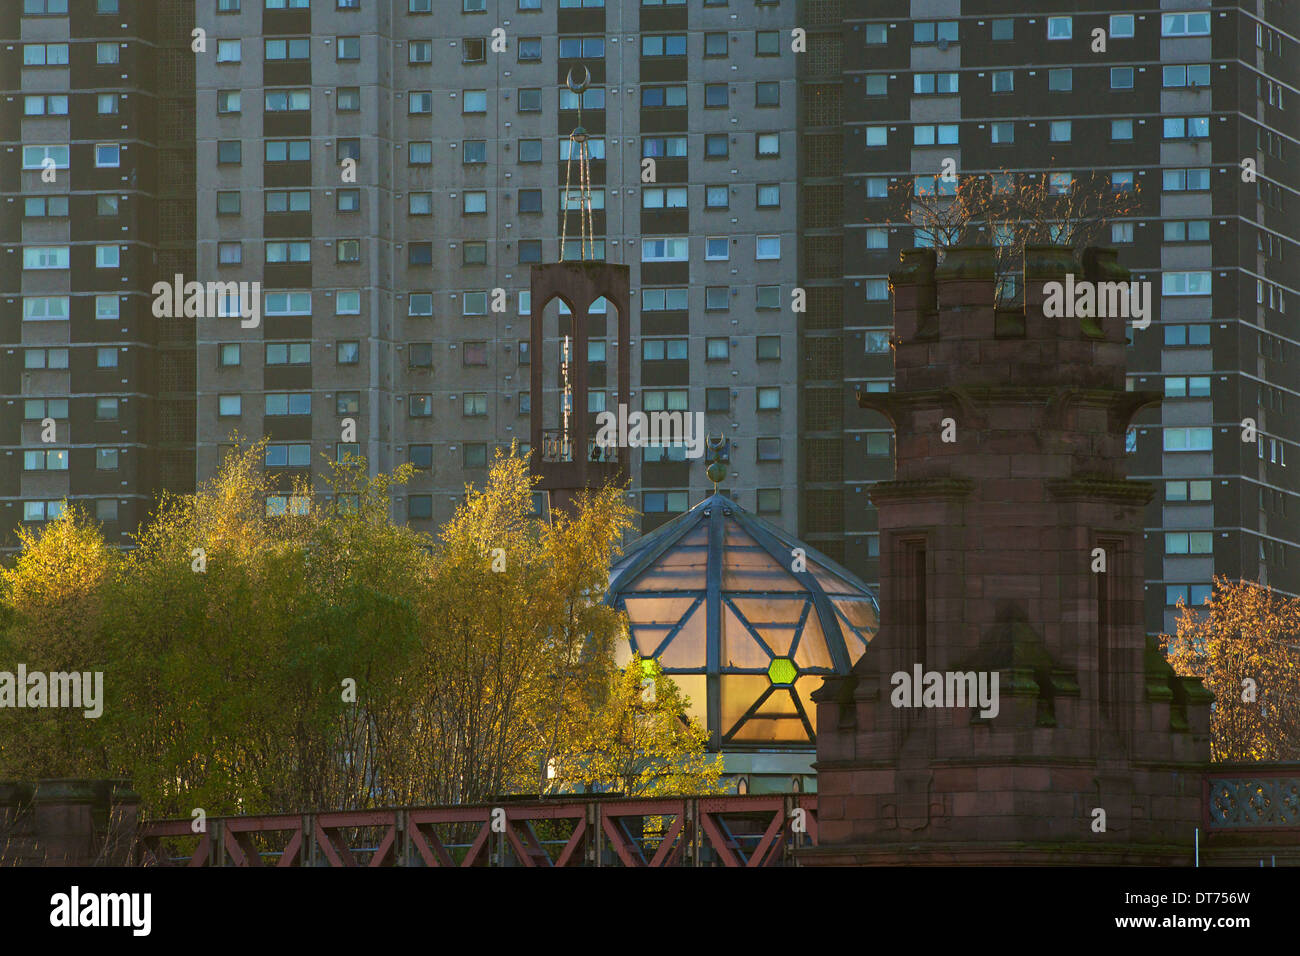 The dome and Minaret of the Central Mosque in Glasgow sandwiched between Gorbals Cross high flats and the old railway bridge. - Stock Image